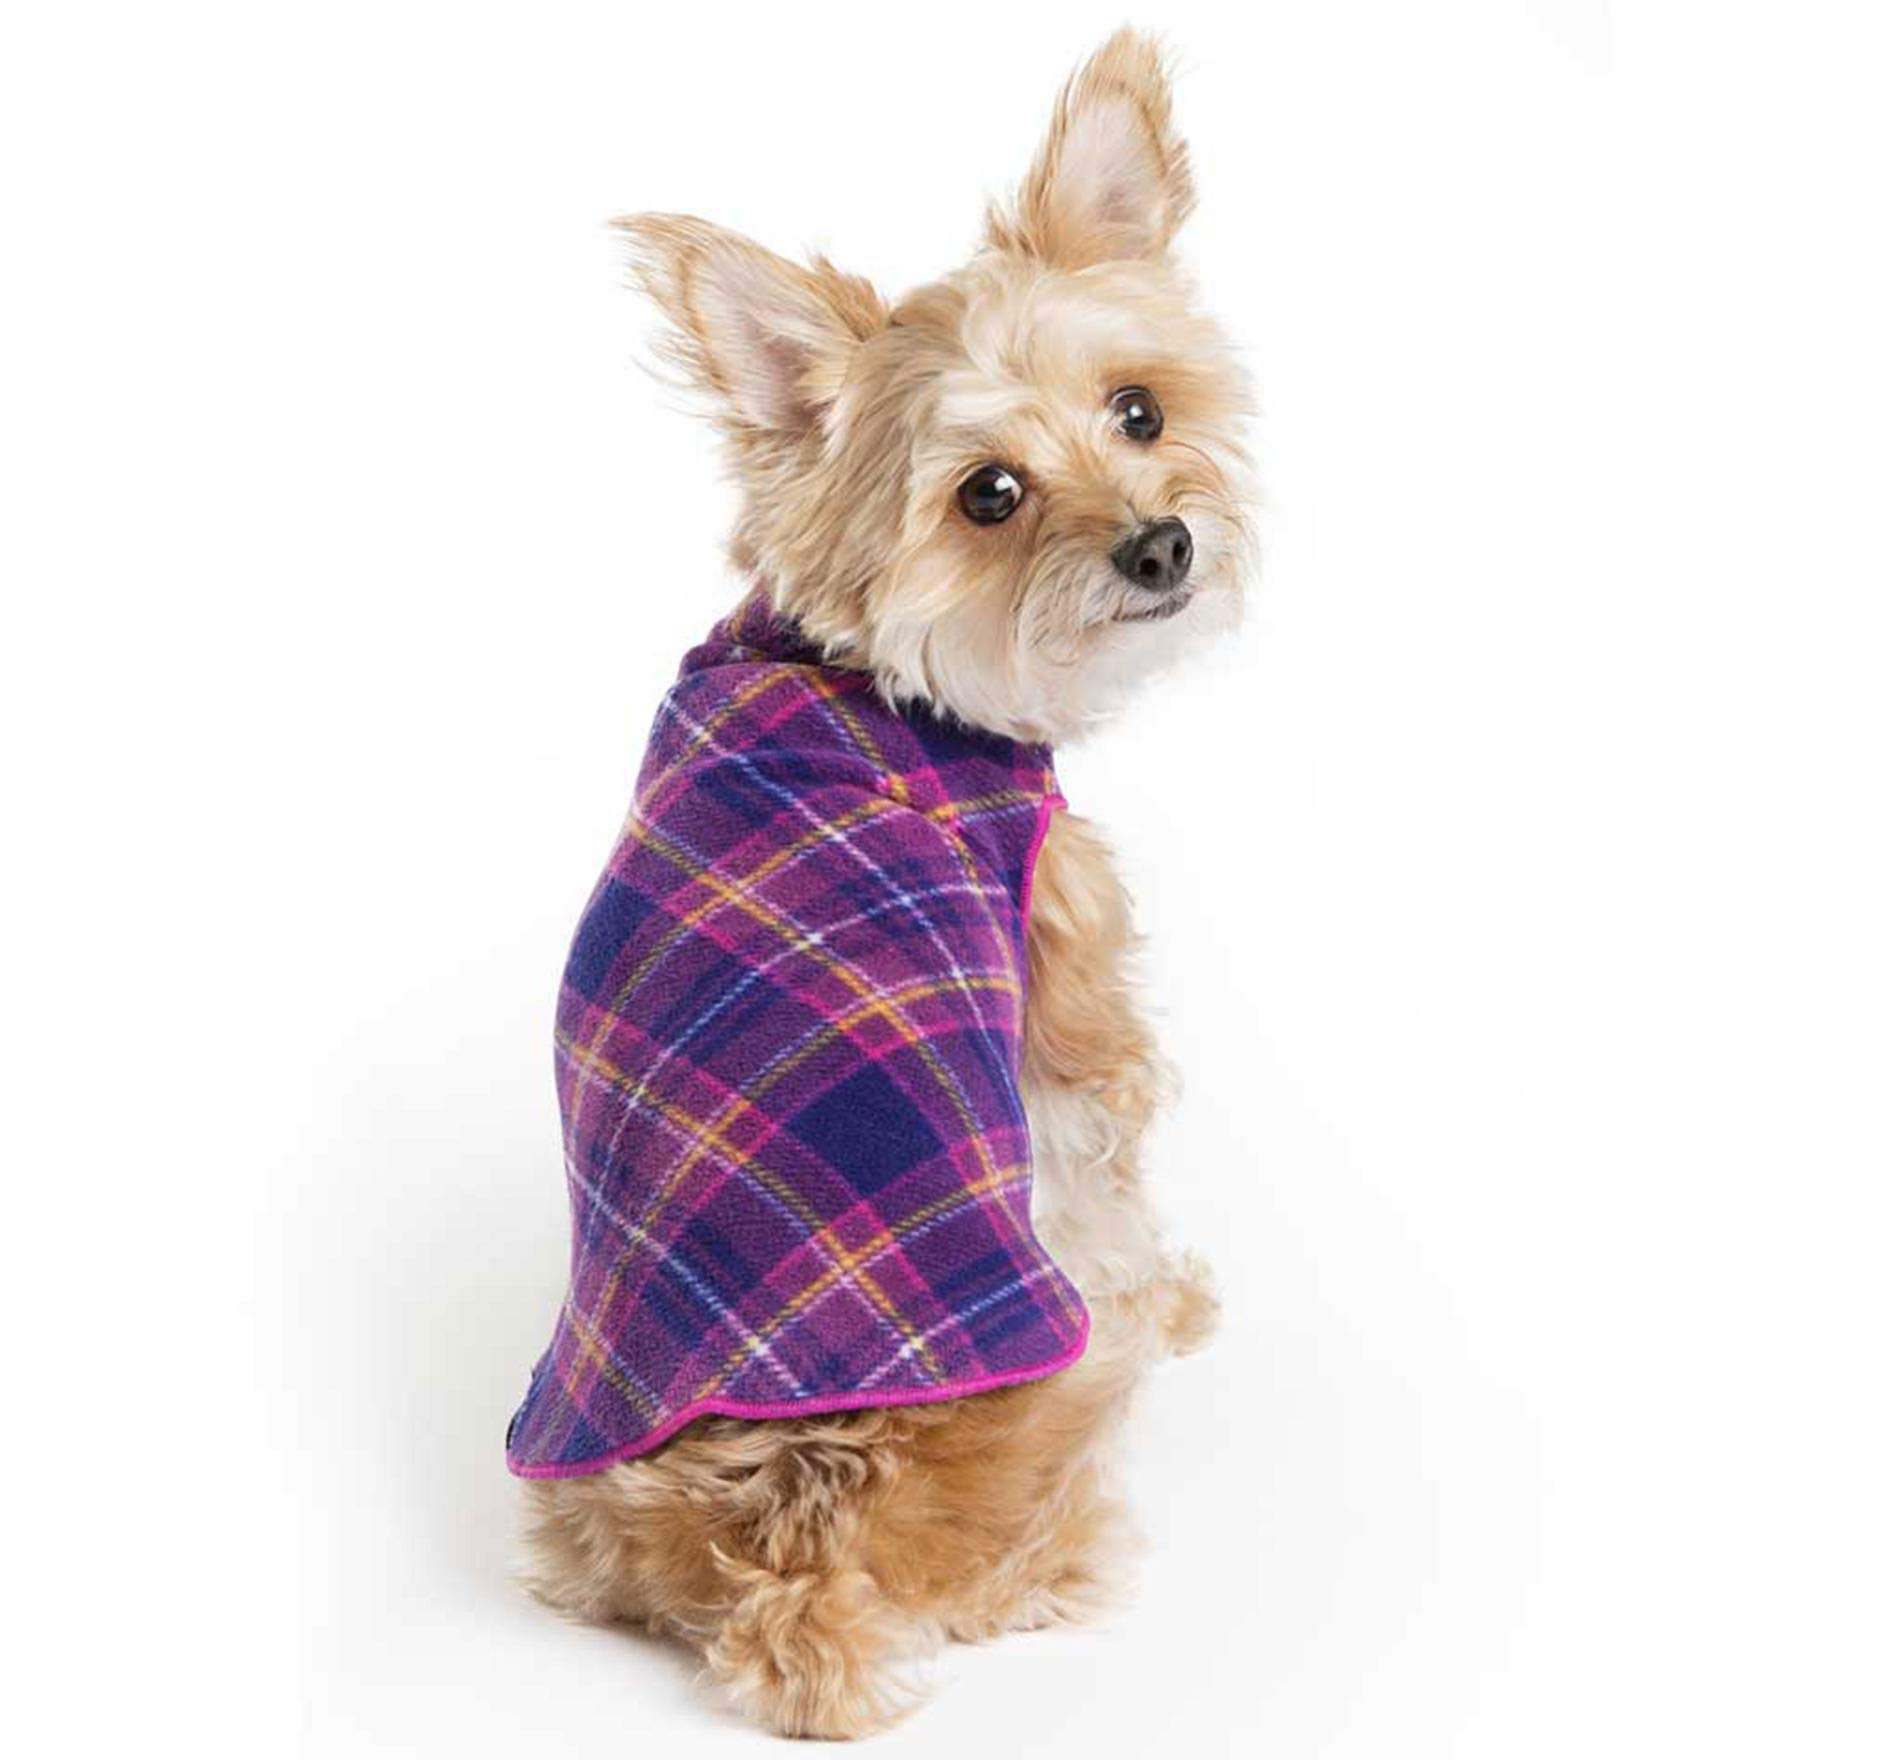 Gold Paw Stretch Fleece Dog Coat - Soft, Warm Dog Clothes, Stretchy Pet Sweater - Machine Washable, Eco Friendly - All Season, Mulberry Plaid, Size 24 by Gold Paw